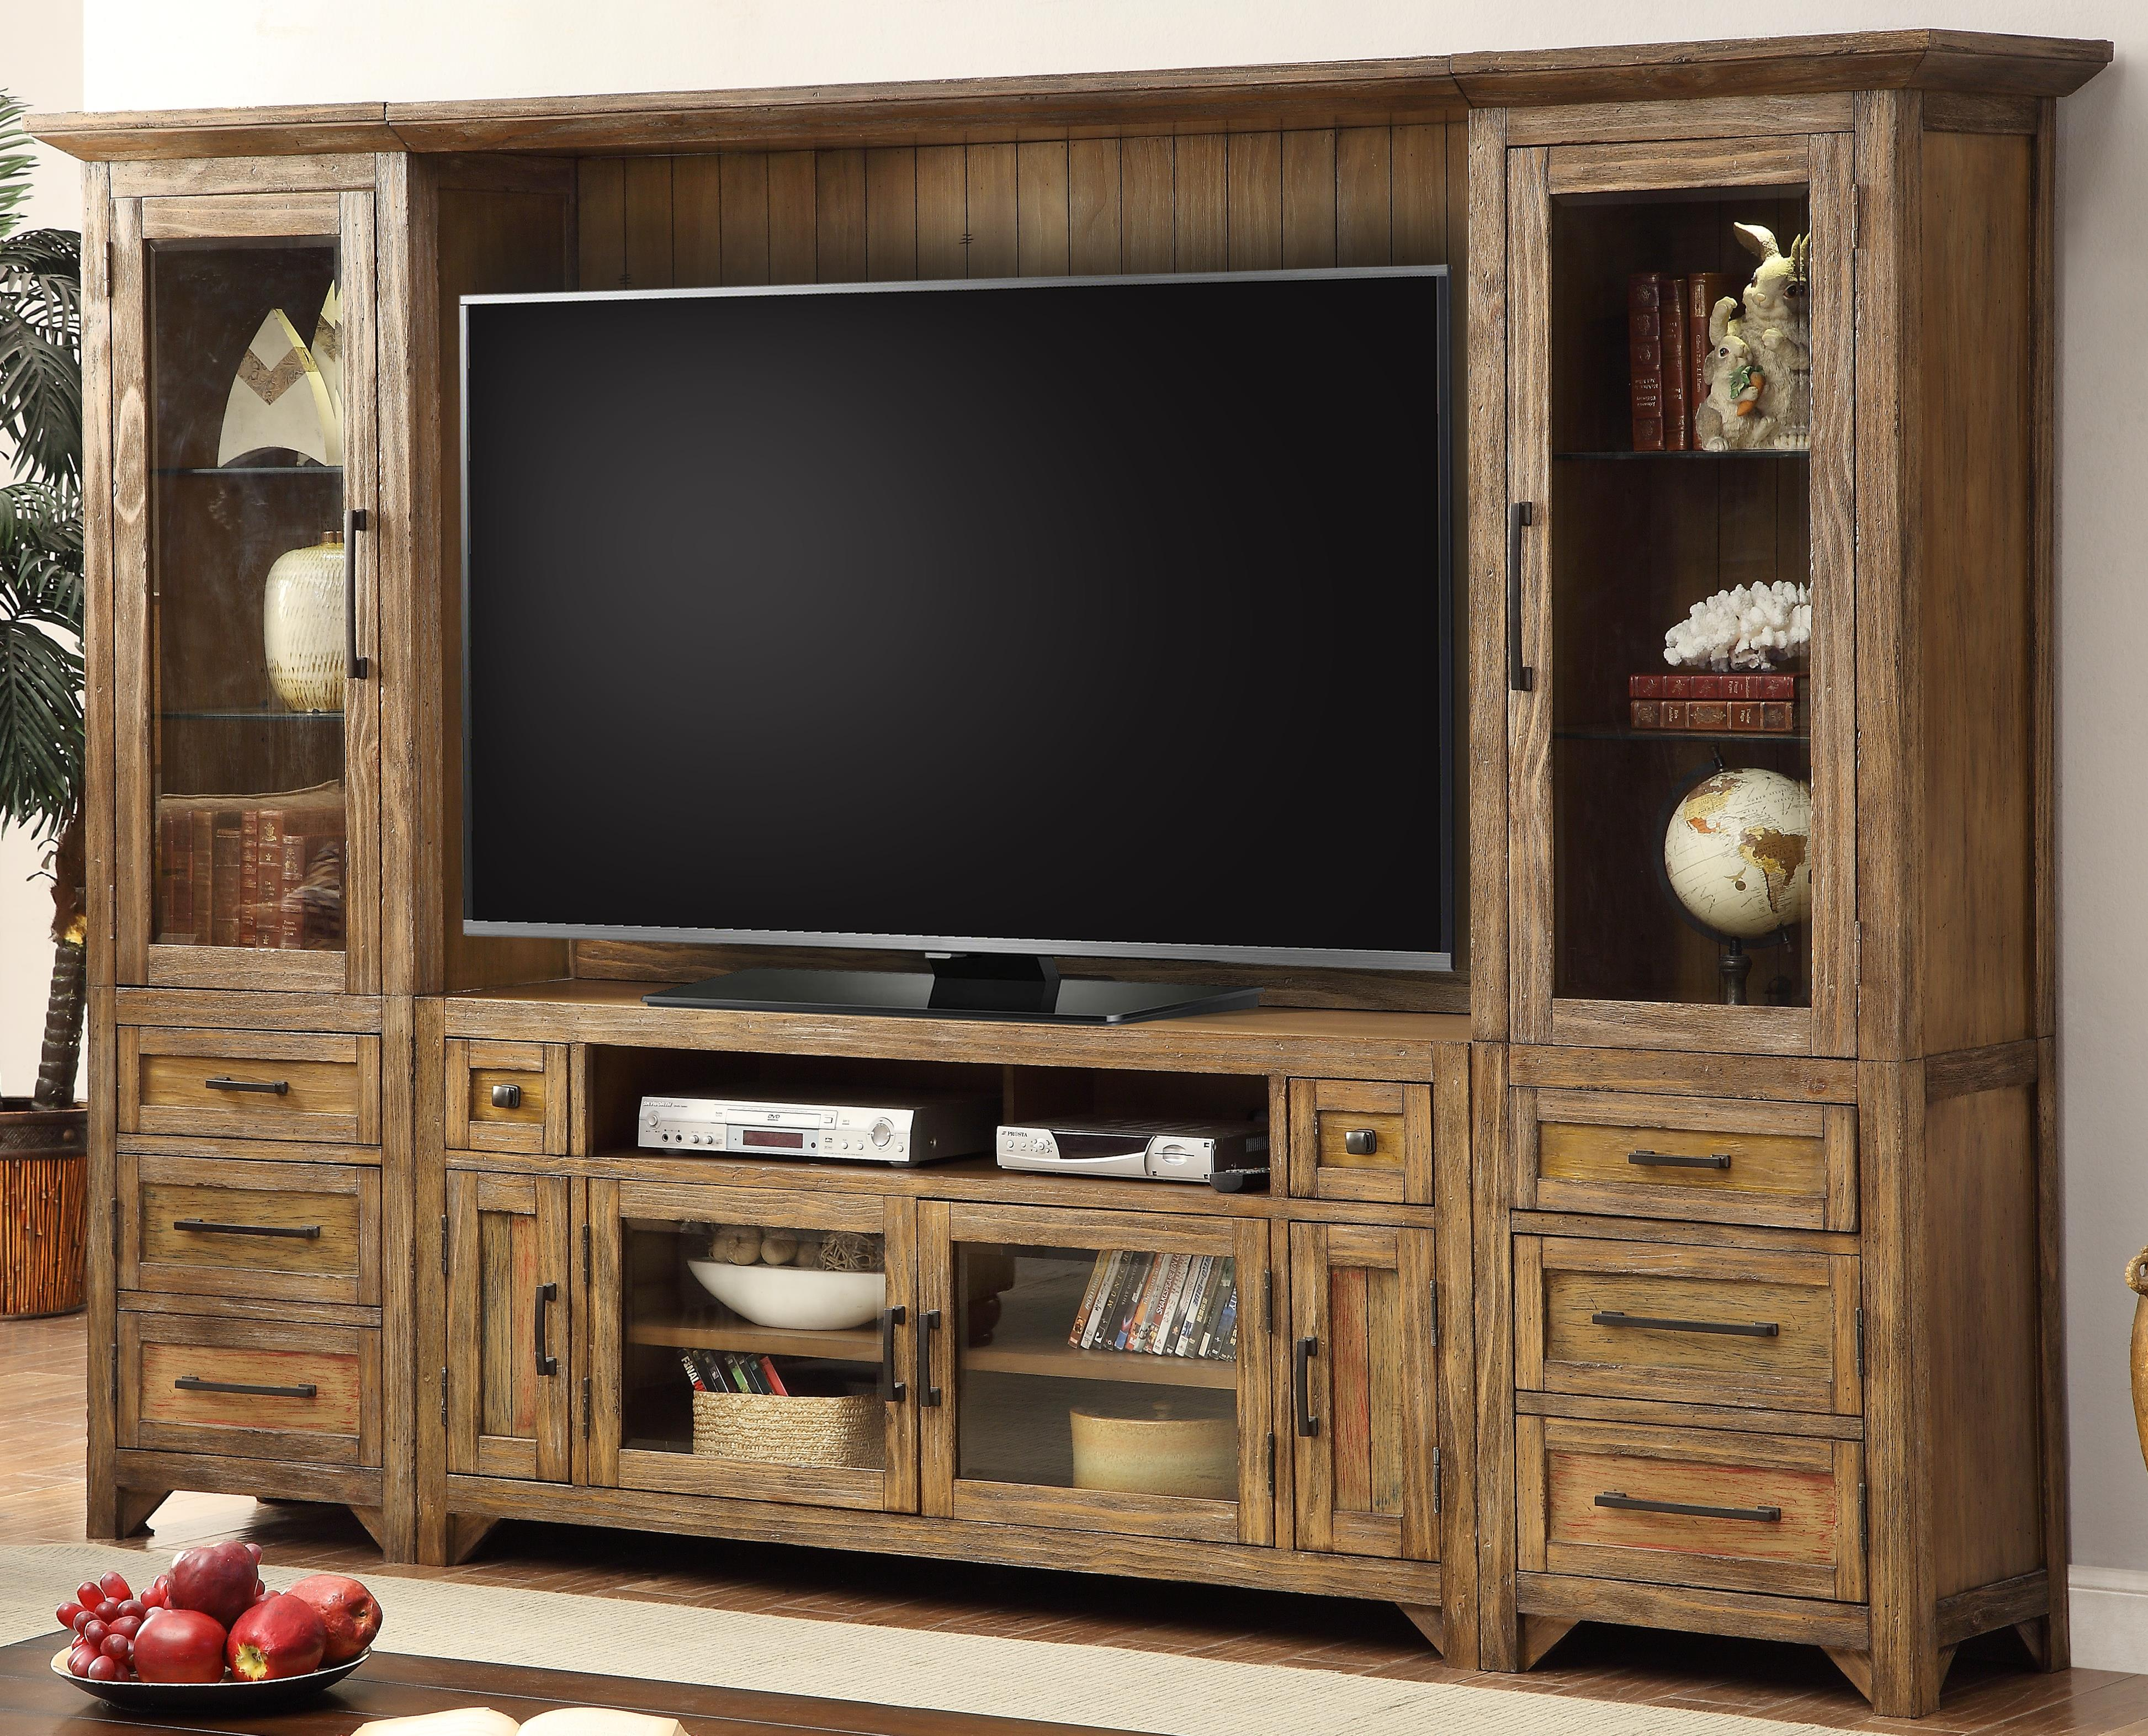 Parker House Hunts Point 4pc Entertainment Wall - Item Number: HPT-100-4